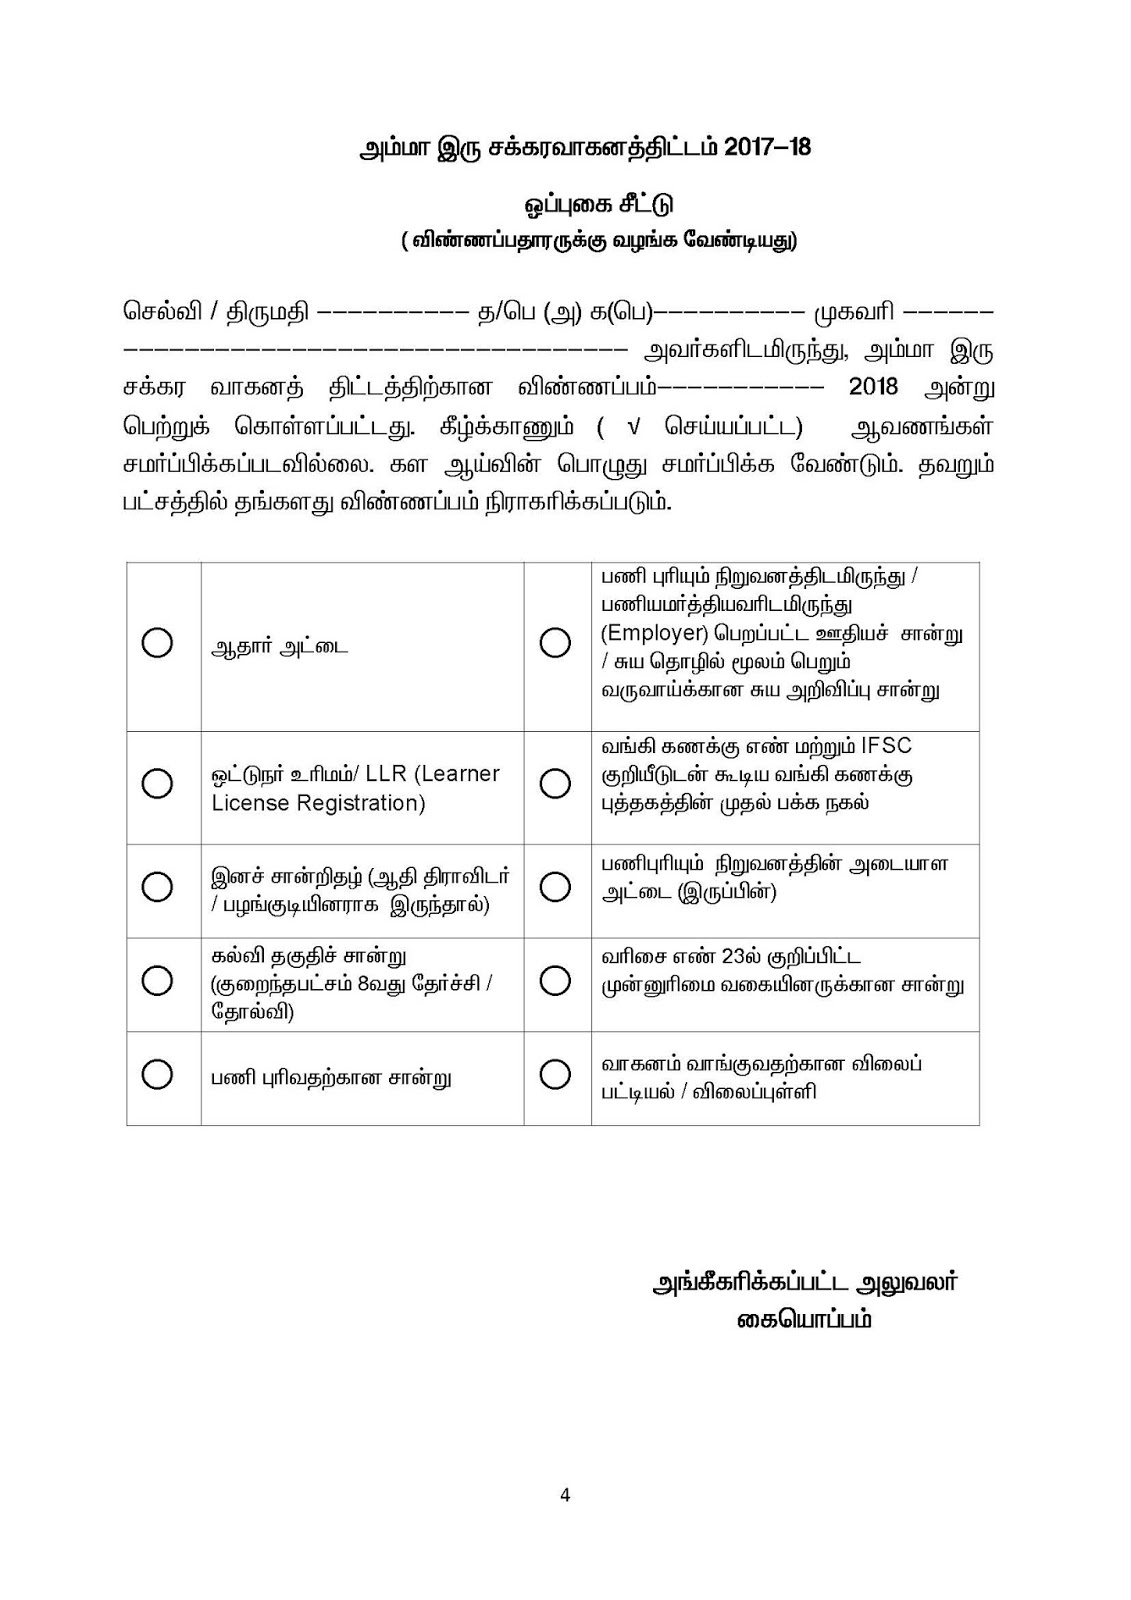 Amma scooter scheme Tamil Application form download